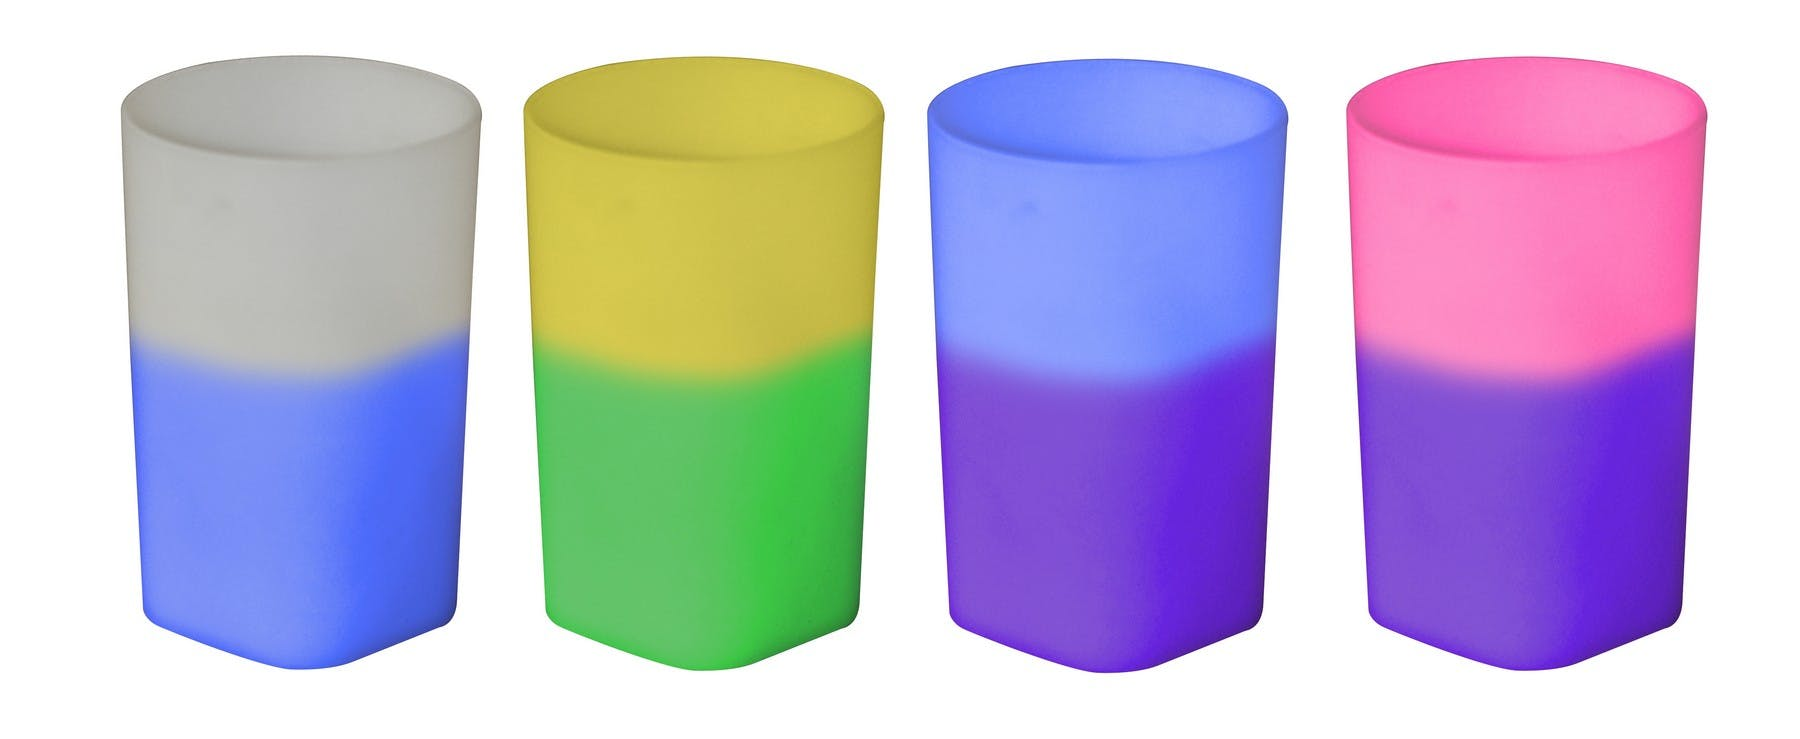 2 Oz. Color Changing Shot Glass (Item # YIILS-KACNH) Shot glass sold by InkEasy